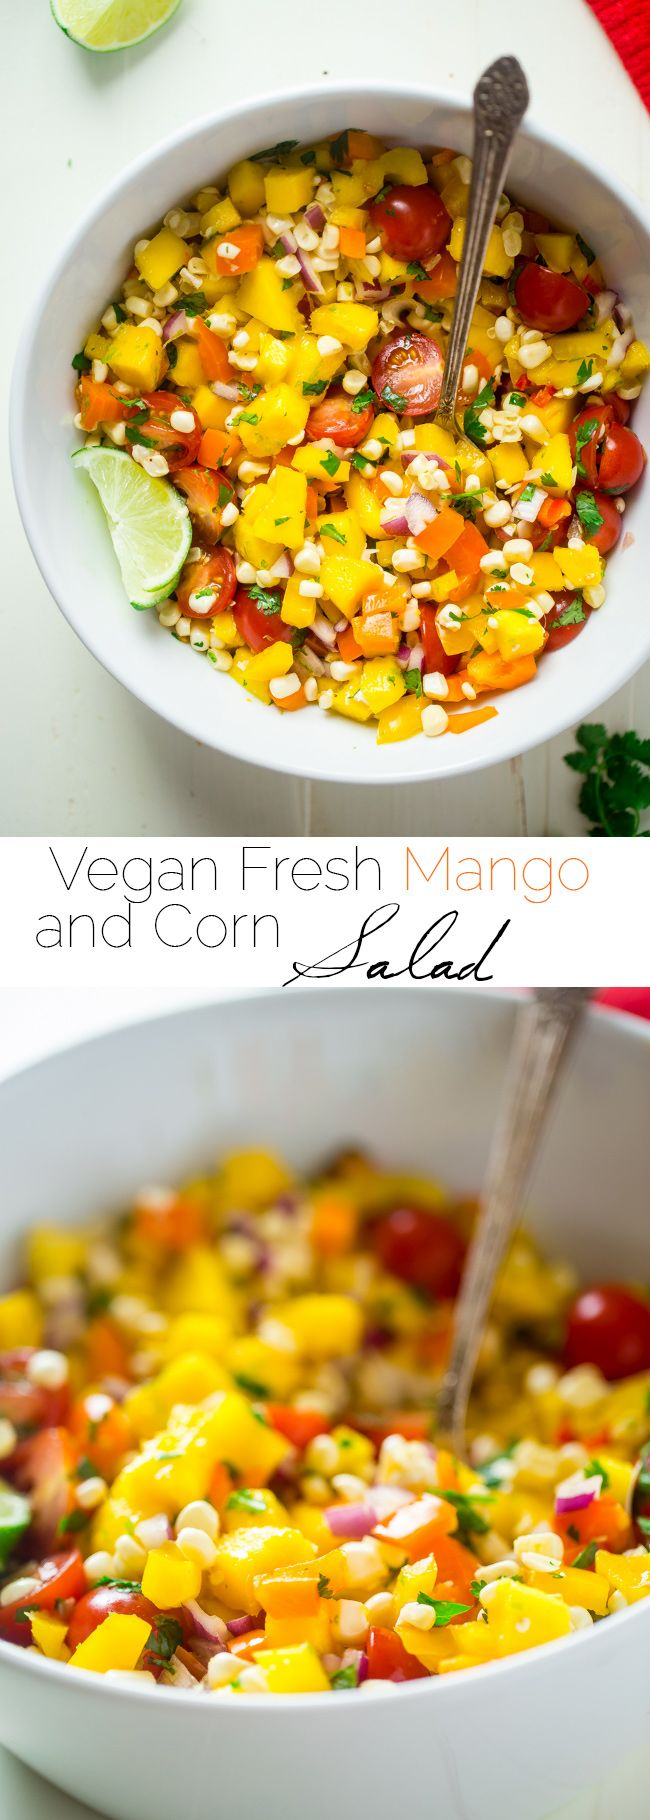 Vegan Fresh Corn and Mango Salad - This healthy salad has fresh corn, juicy, sweet mangos and tons of crispy, fresh vegetables! It's the perfect, quick and easy side dish for summer that is under 100 calories!   Foodfaithfitness.com   @FoodFaithFit